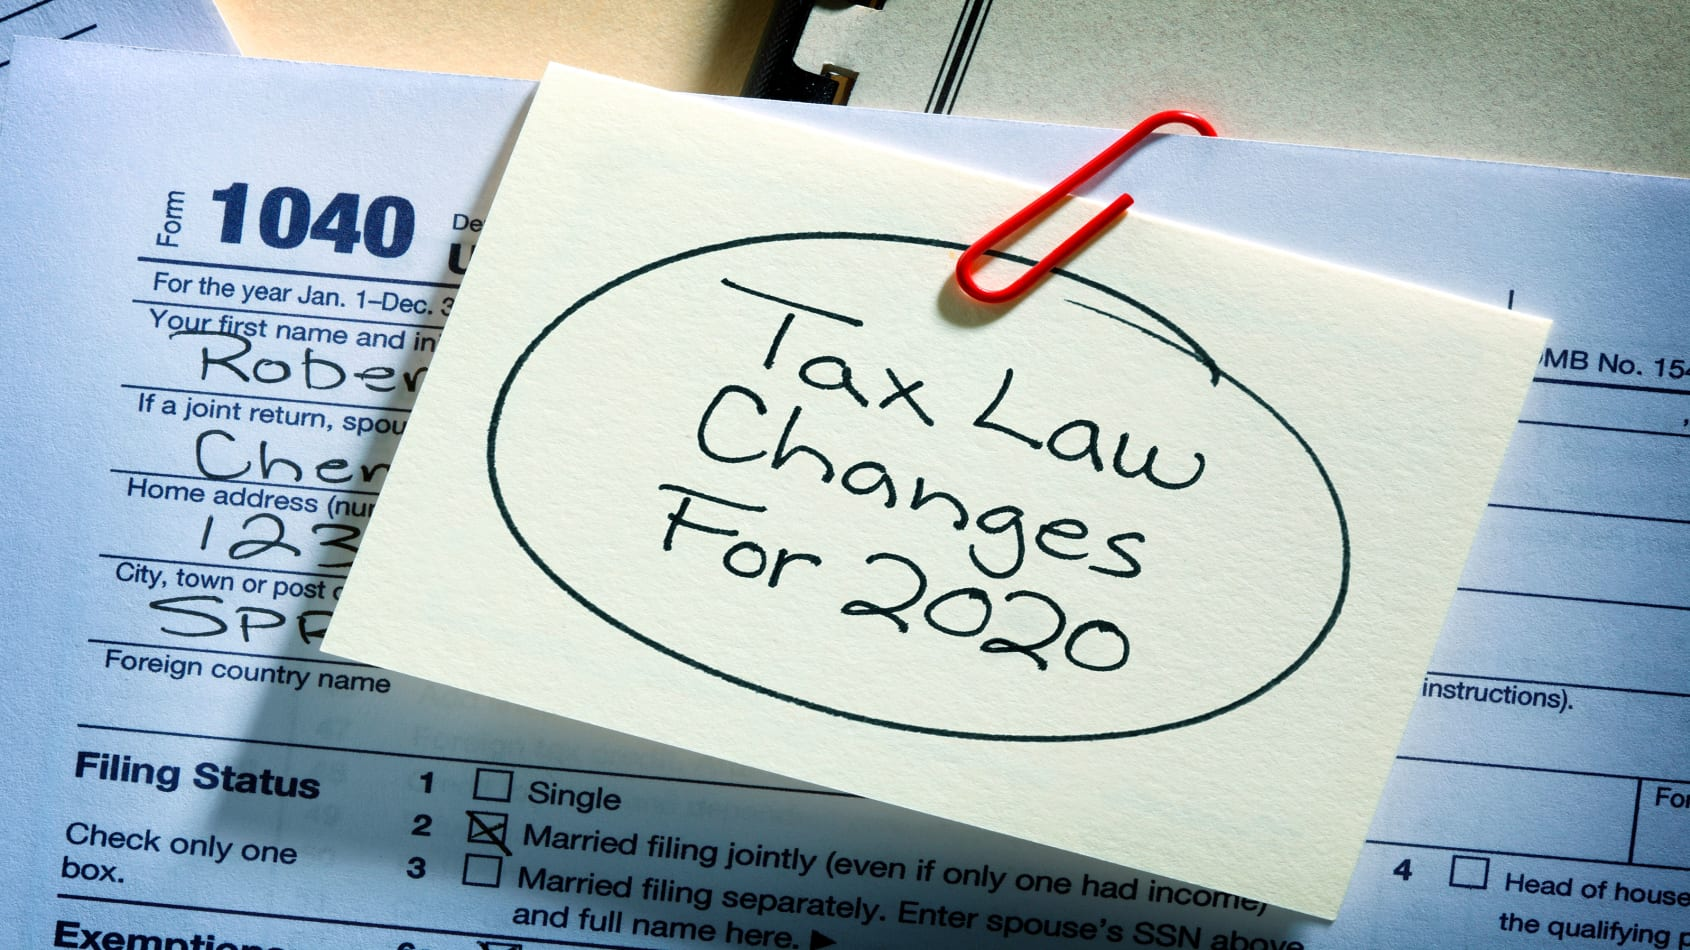 A 1040 tax form with a post-it note that has Tax Law Changes for 2020 written on it.